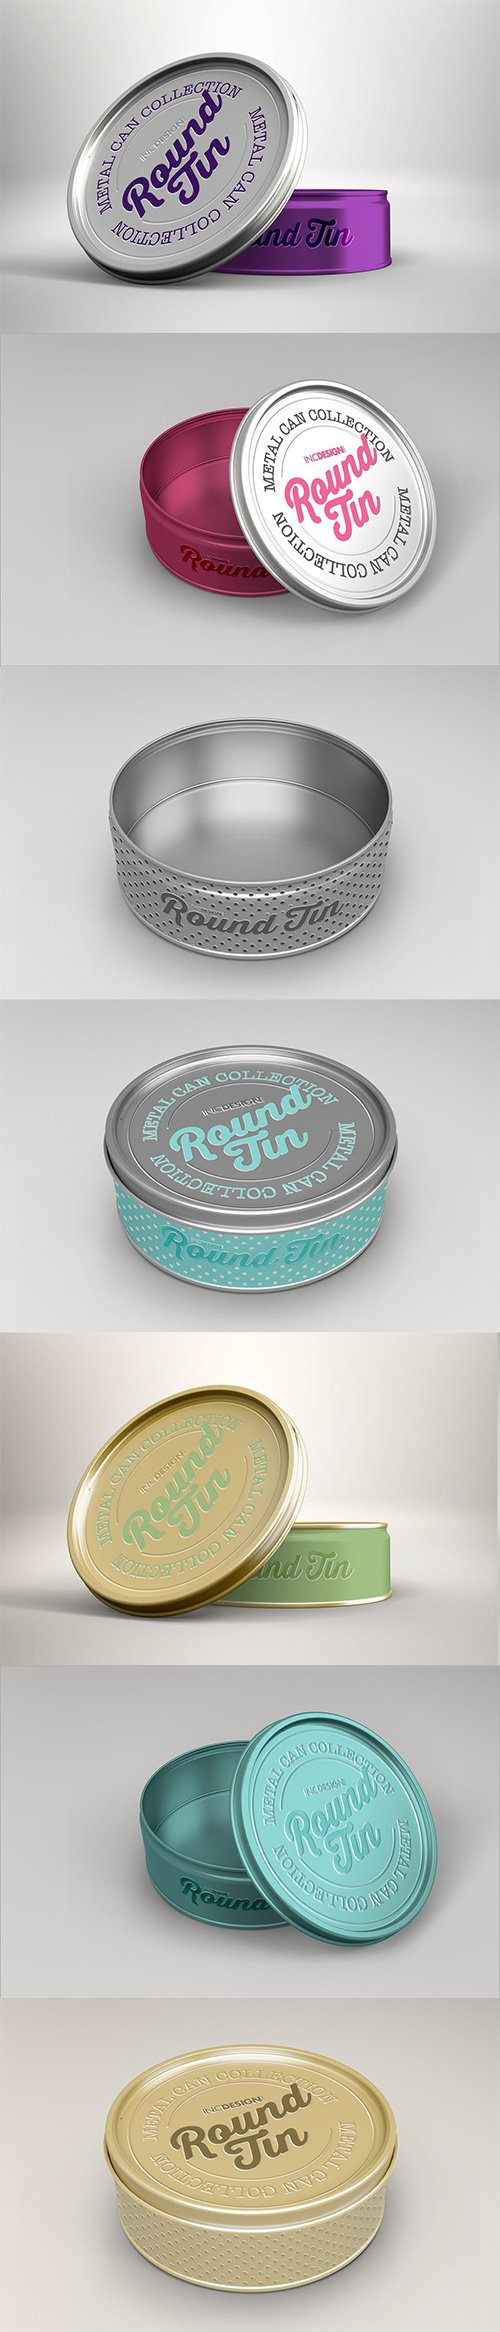 PSD Round Tin Can Packaging Mockups Vol.3